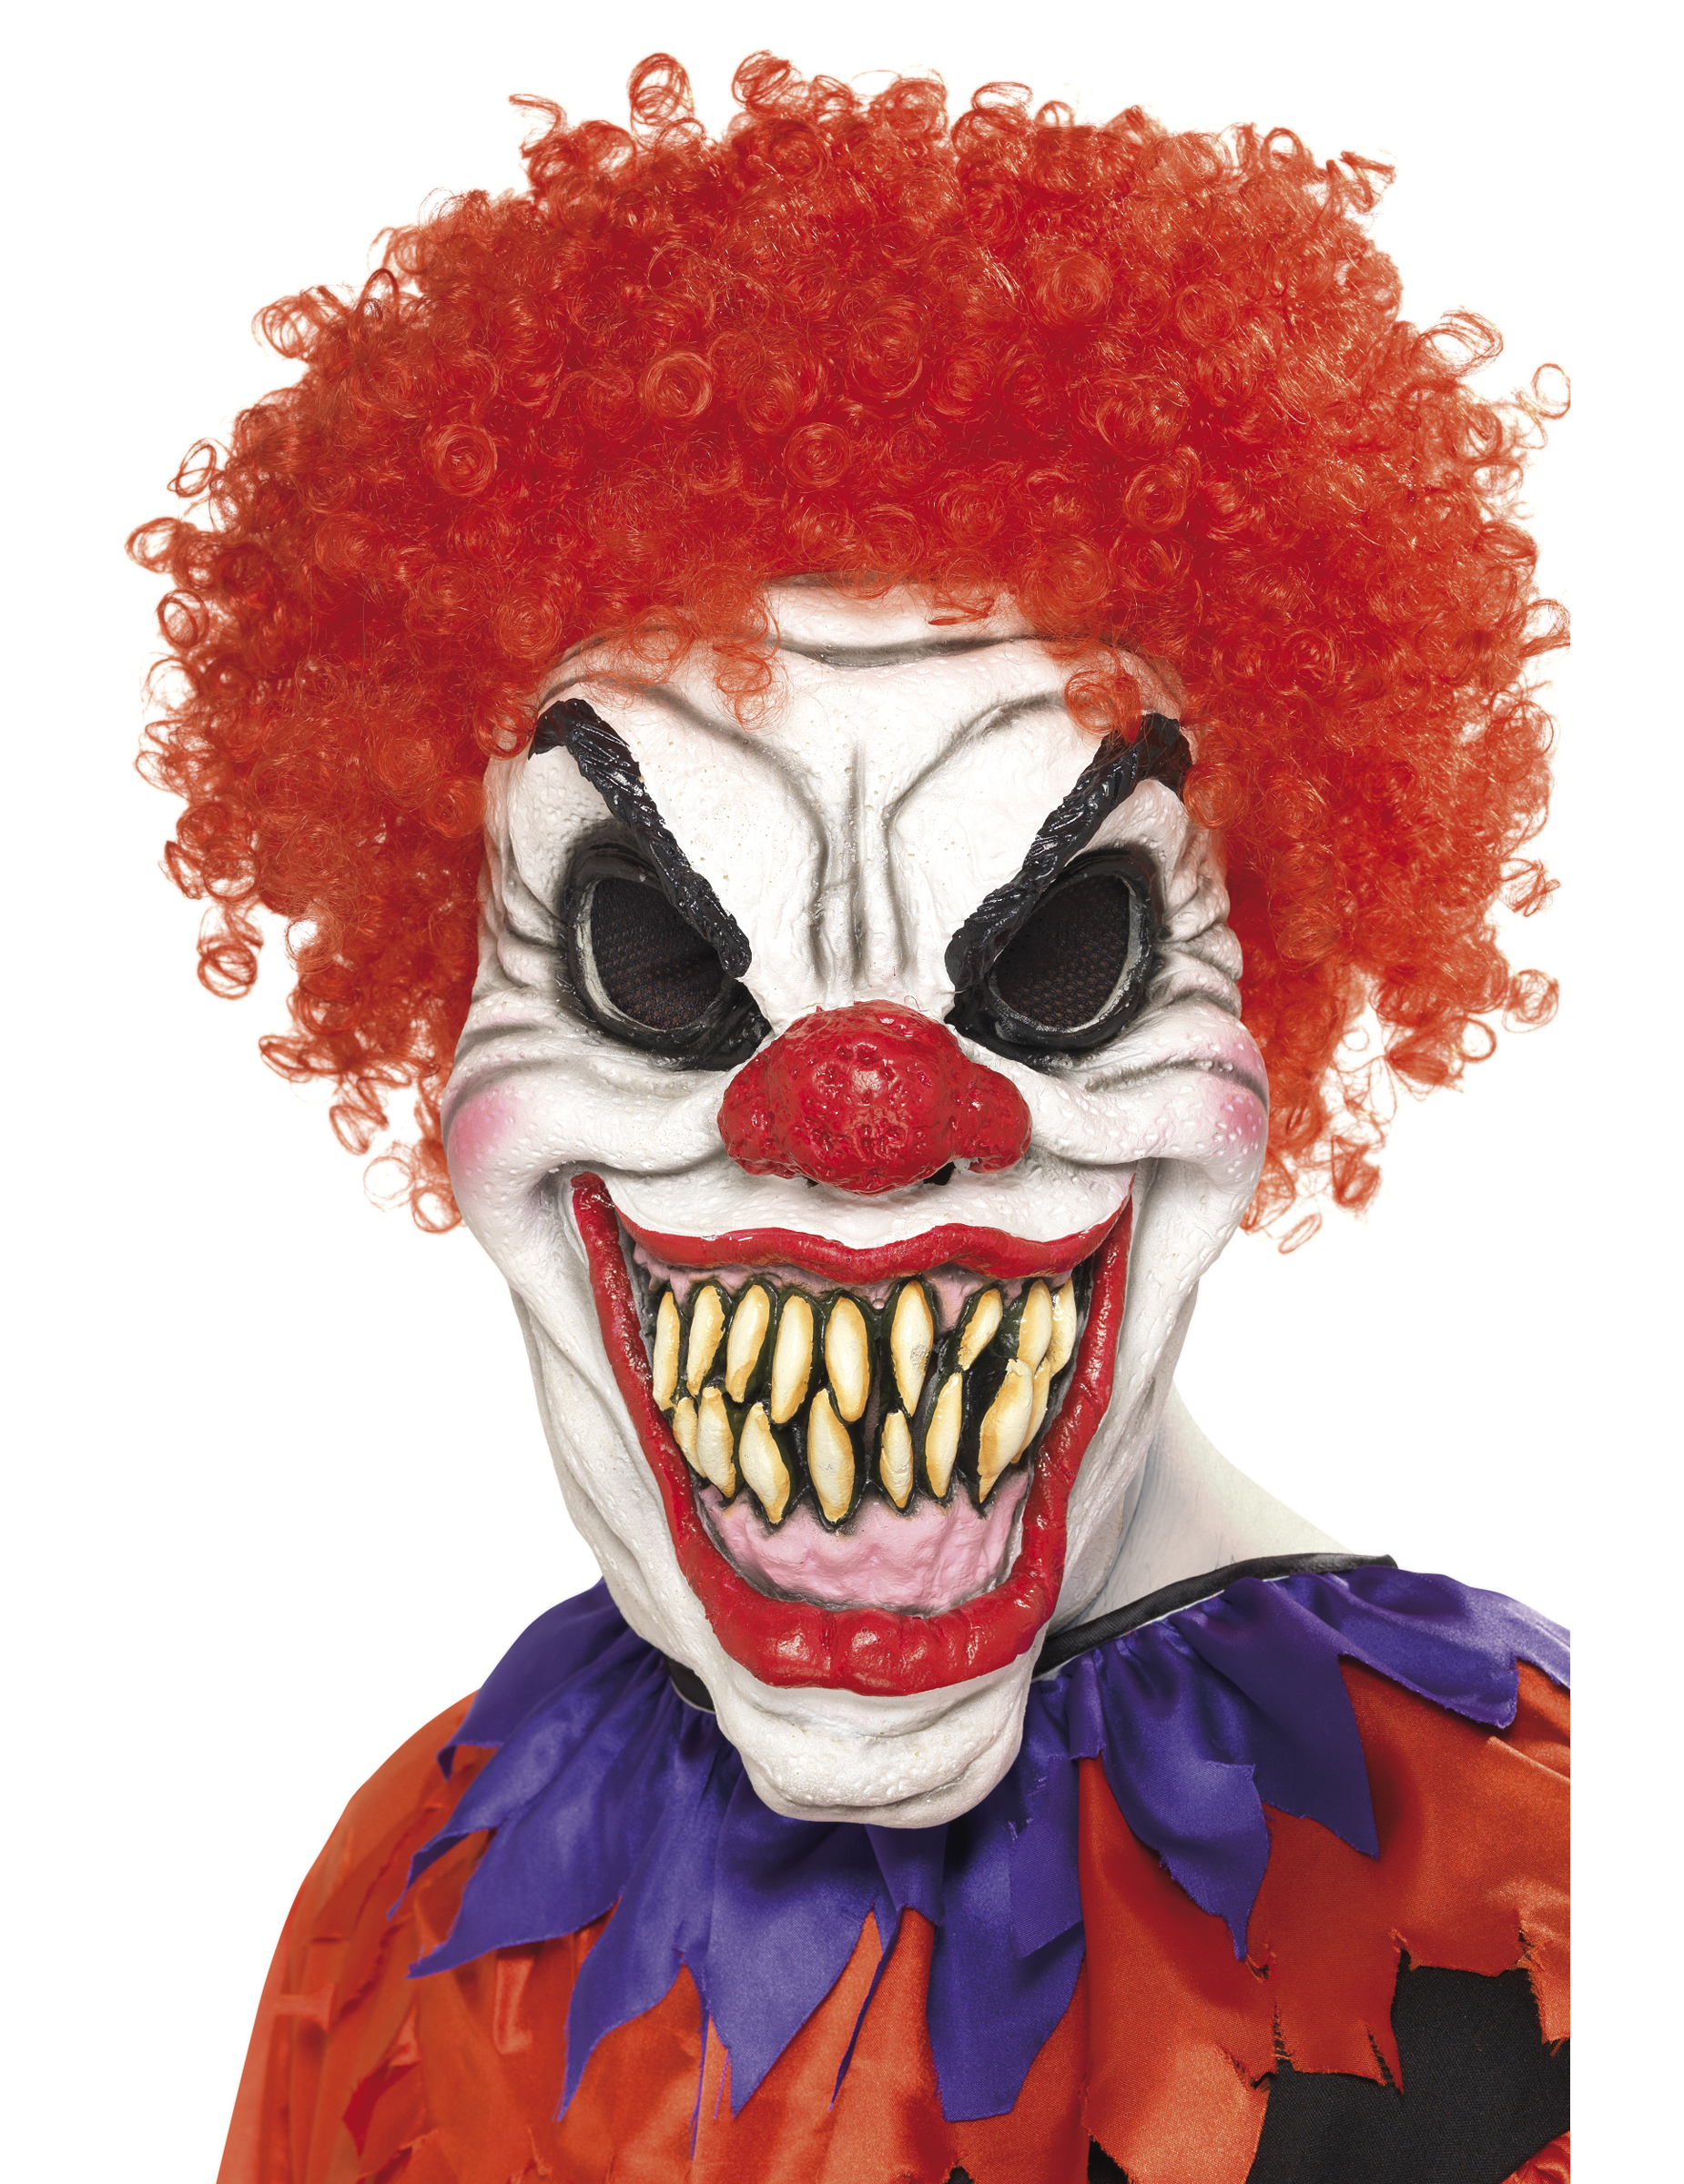 http://cdn.deguisetoi.fr/images/rep_articles/gra/ma/masque-effrayant-de-clown-halloween.jpg